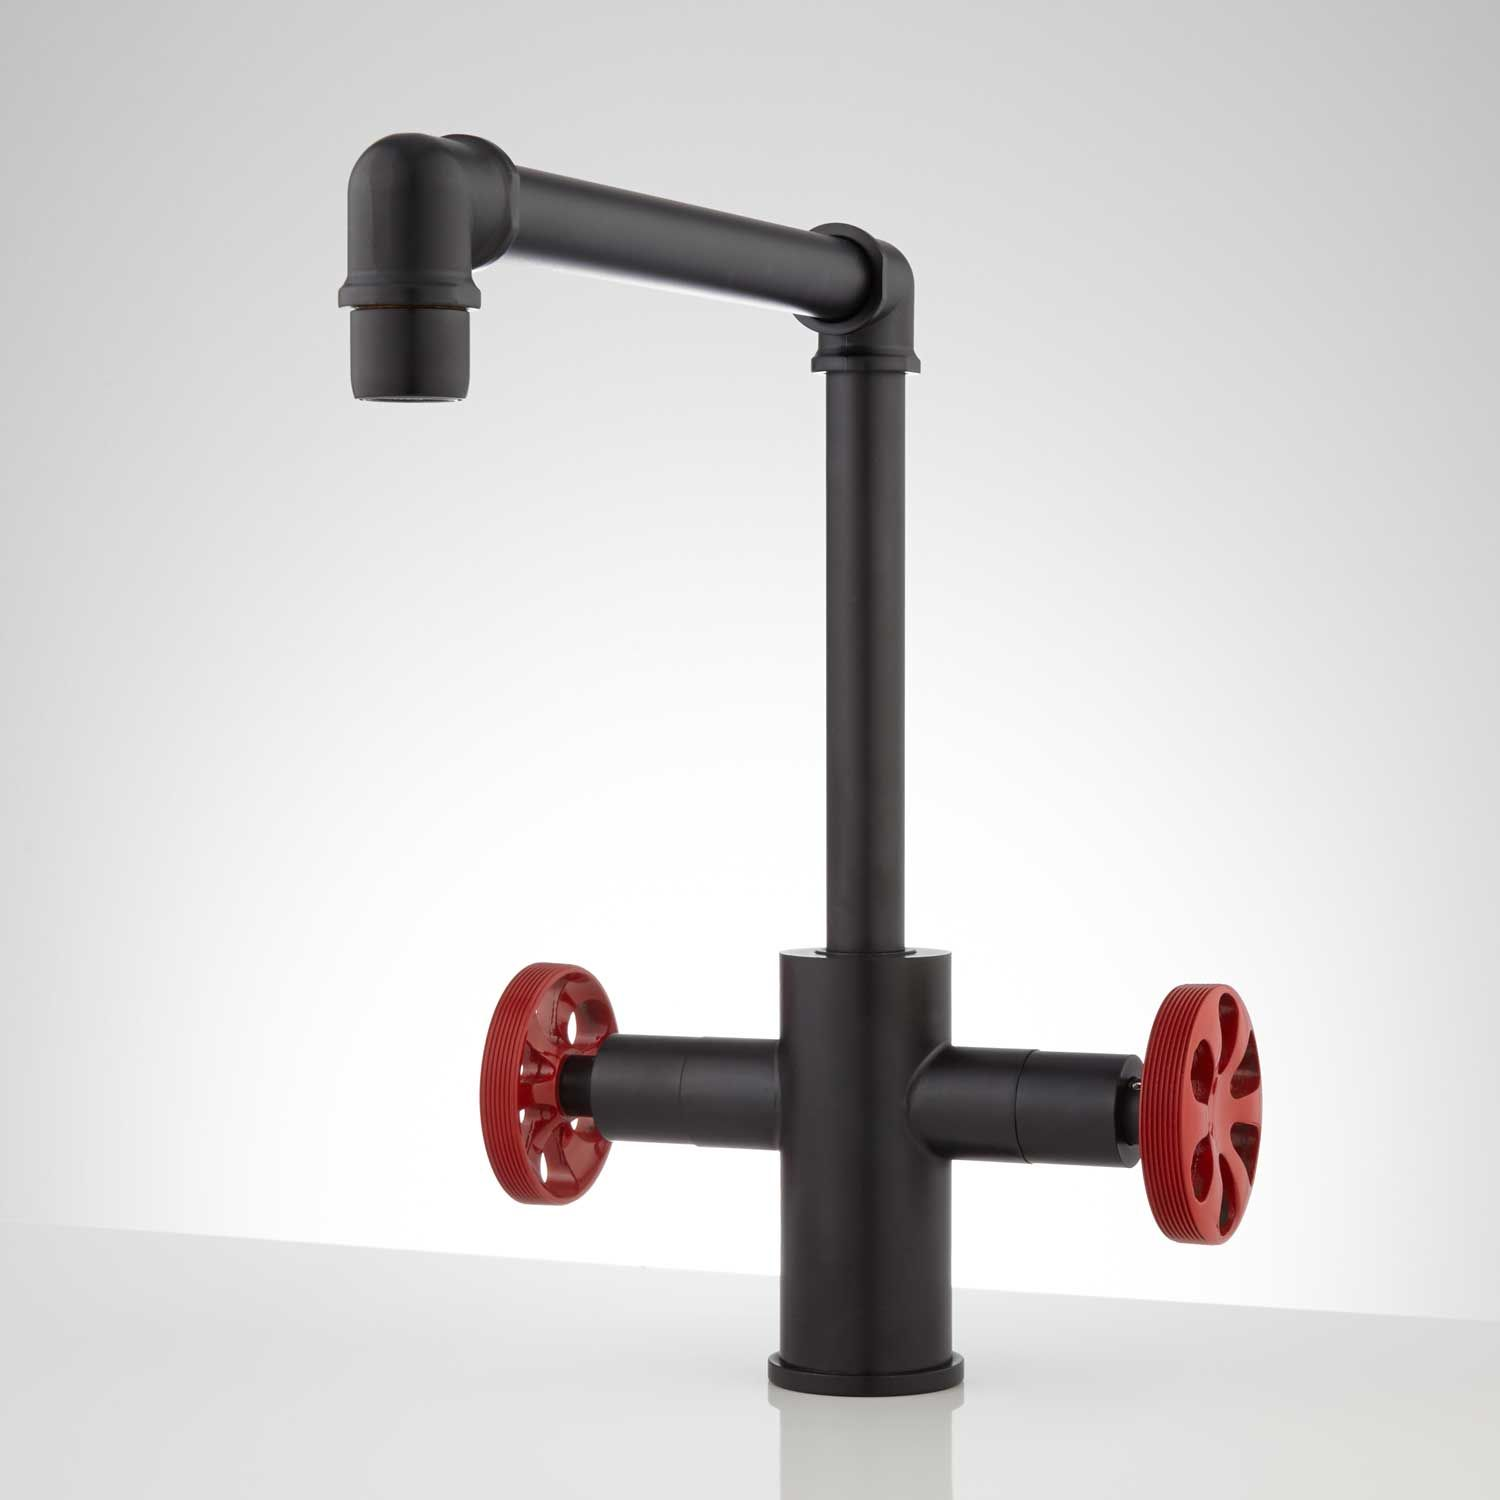 Edison single hole dual handle kitchen faucet black with red handles